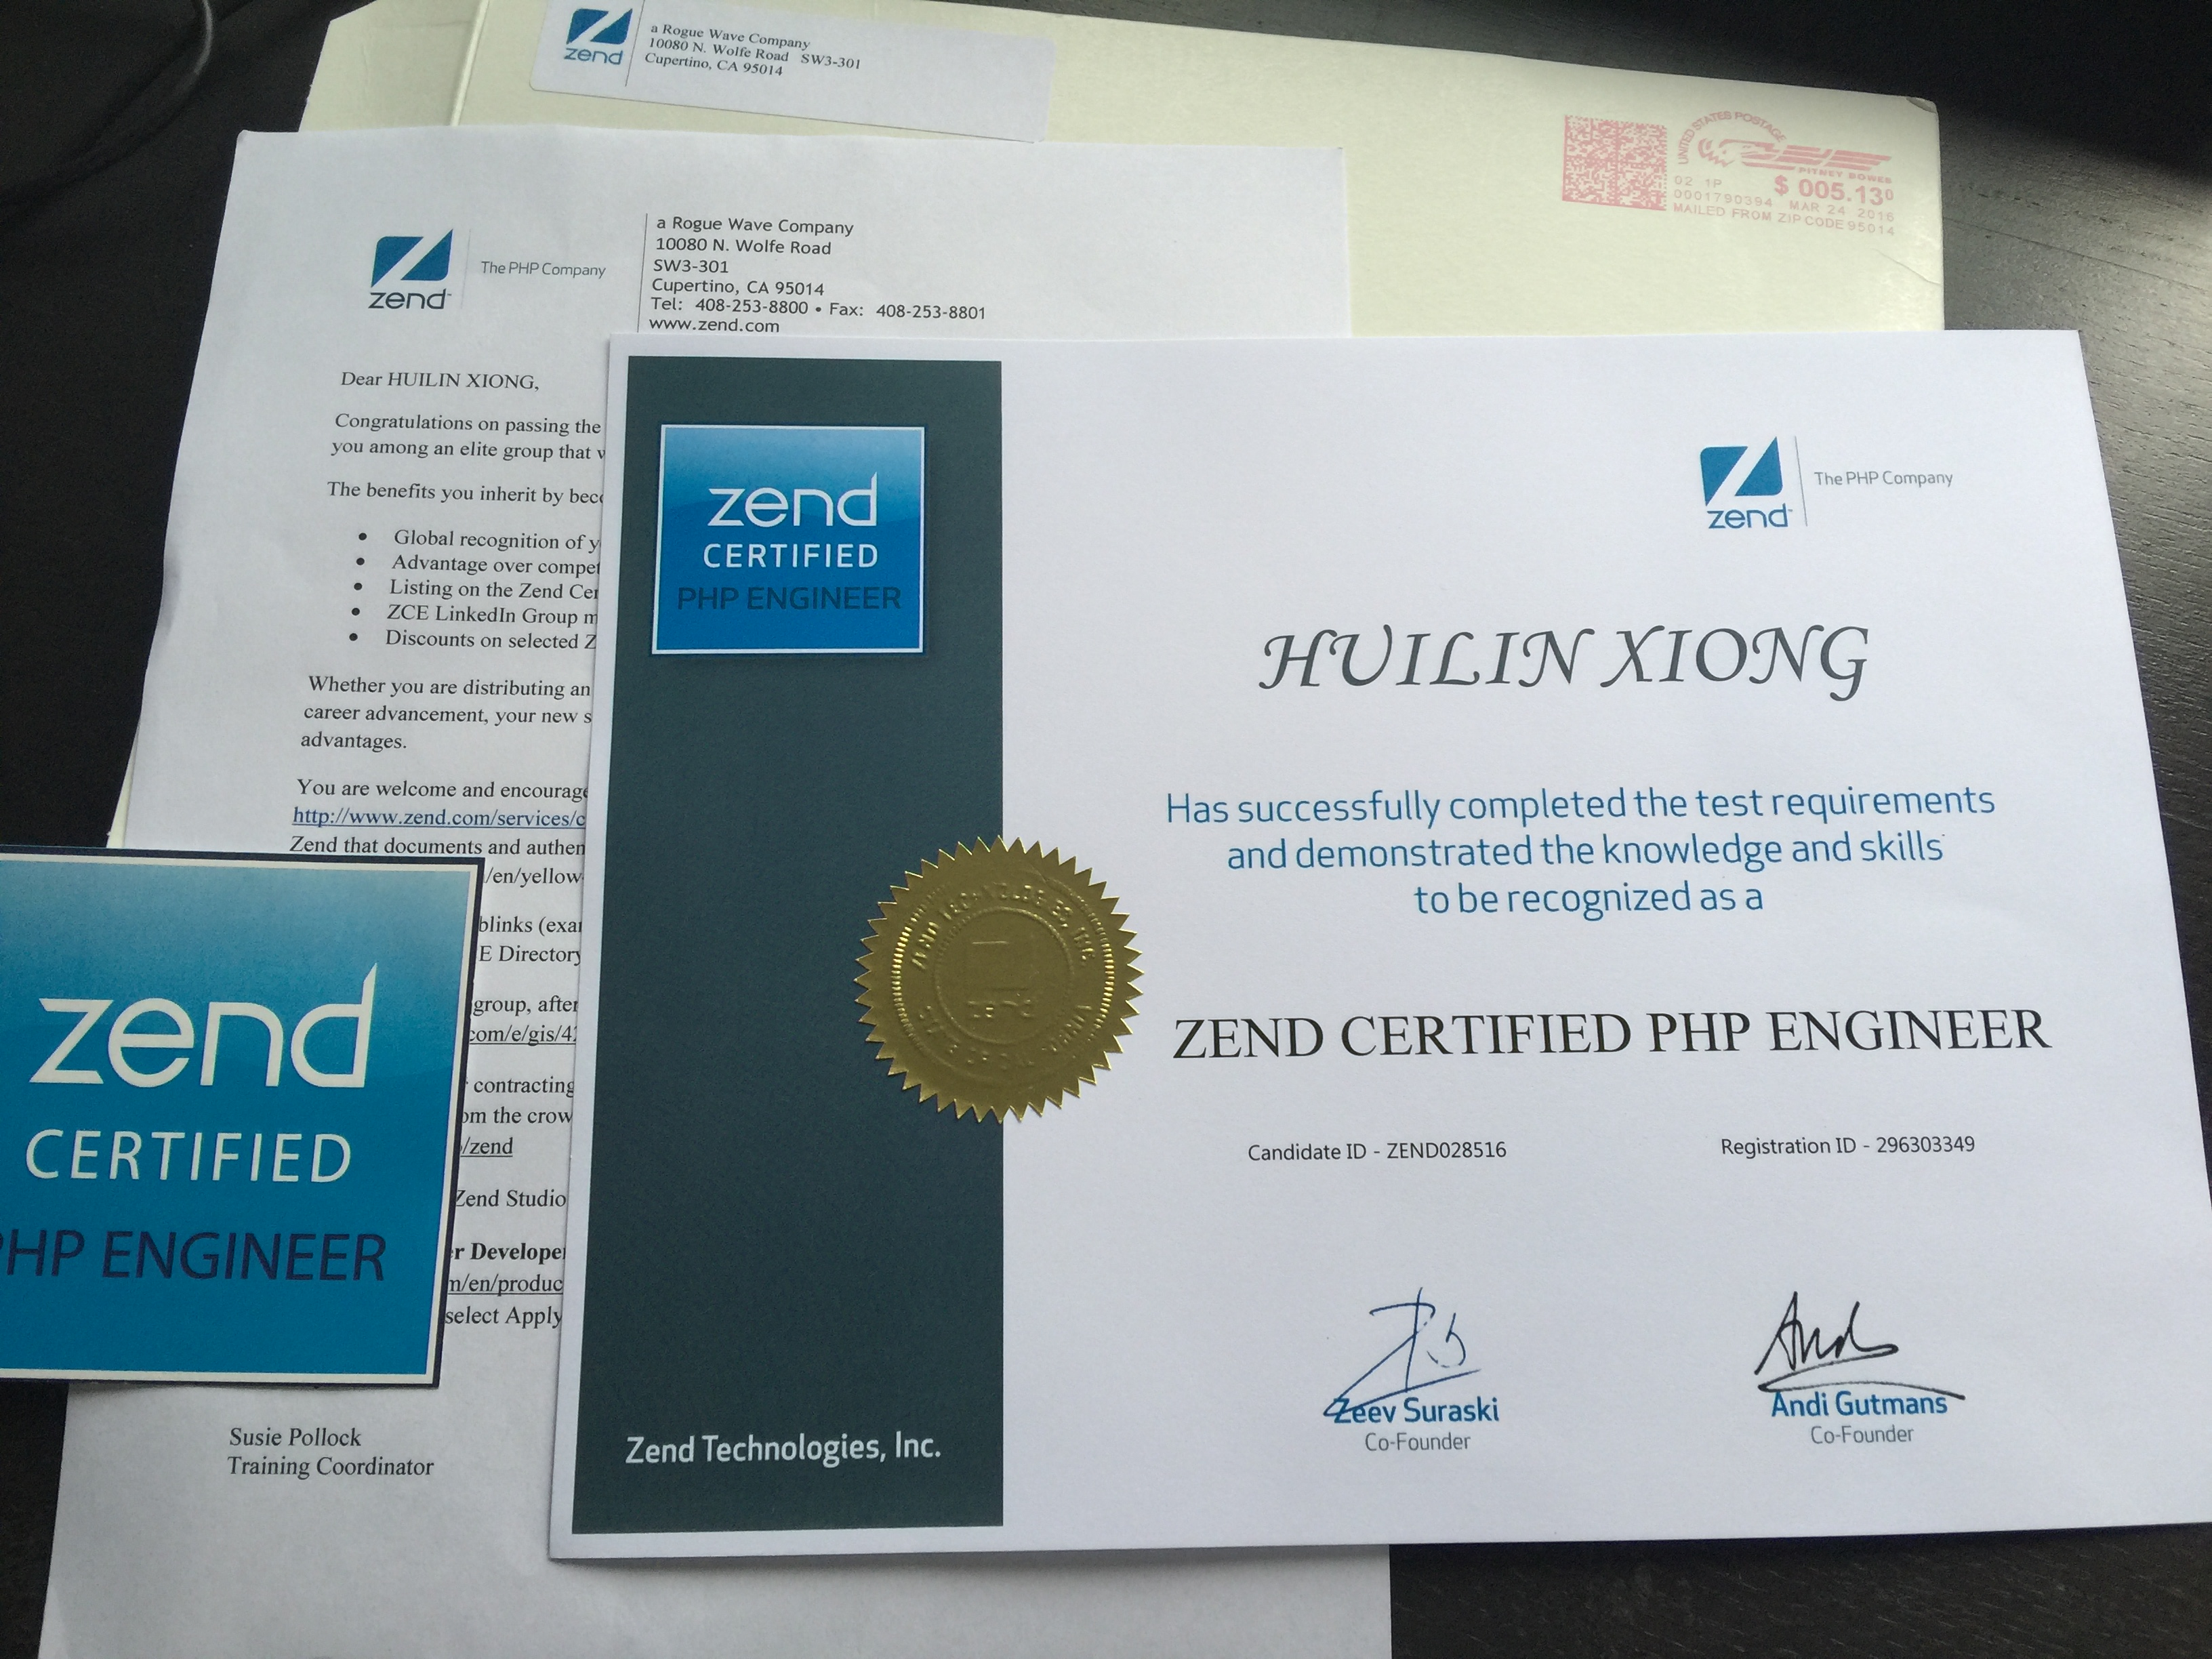 Received Zend Certified Php Engineer Certificate Xiong Hui Lins